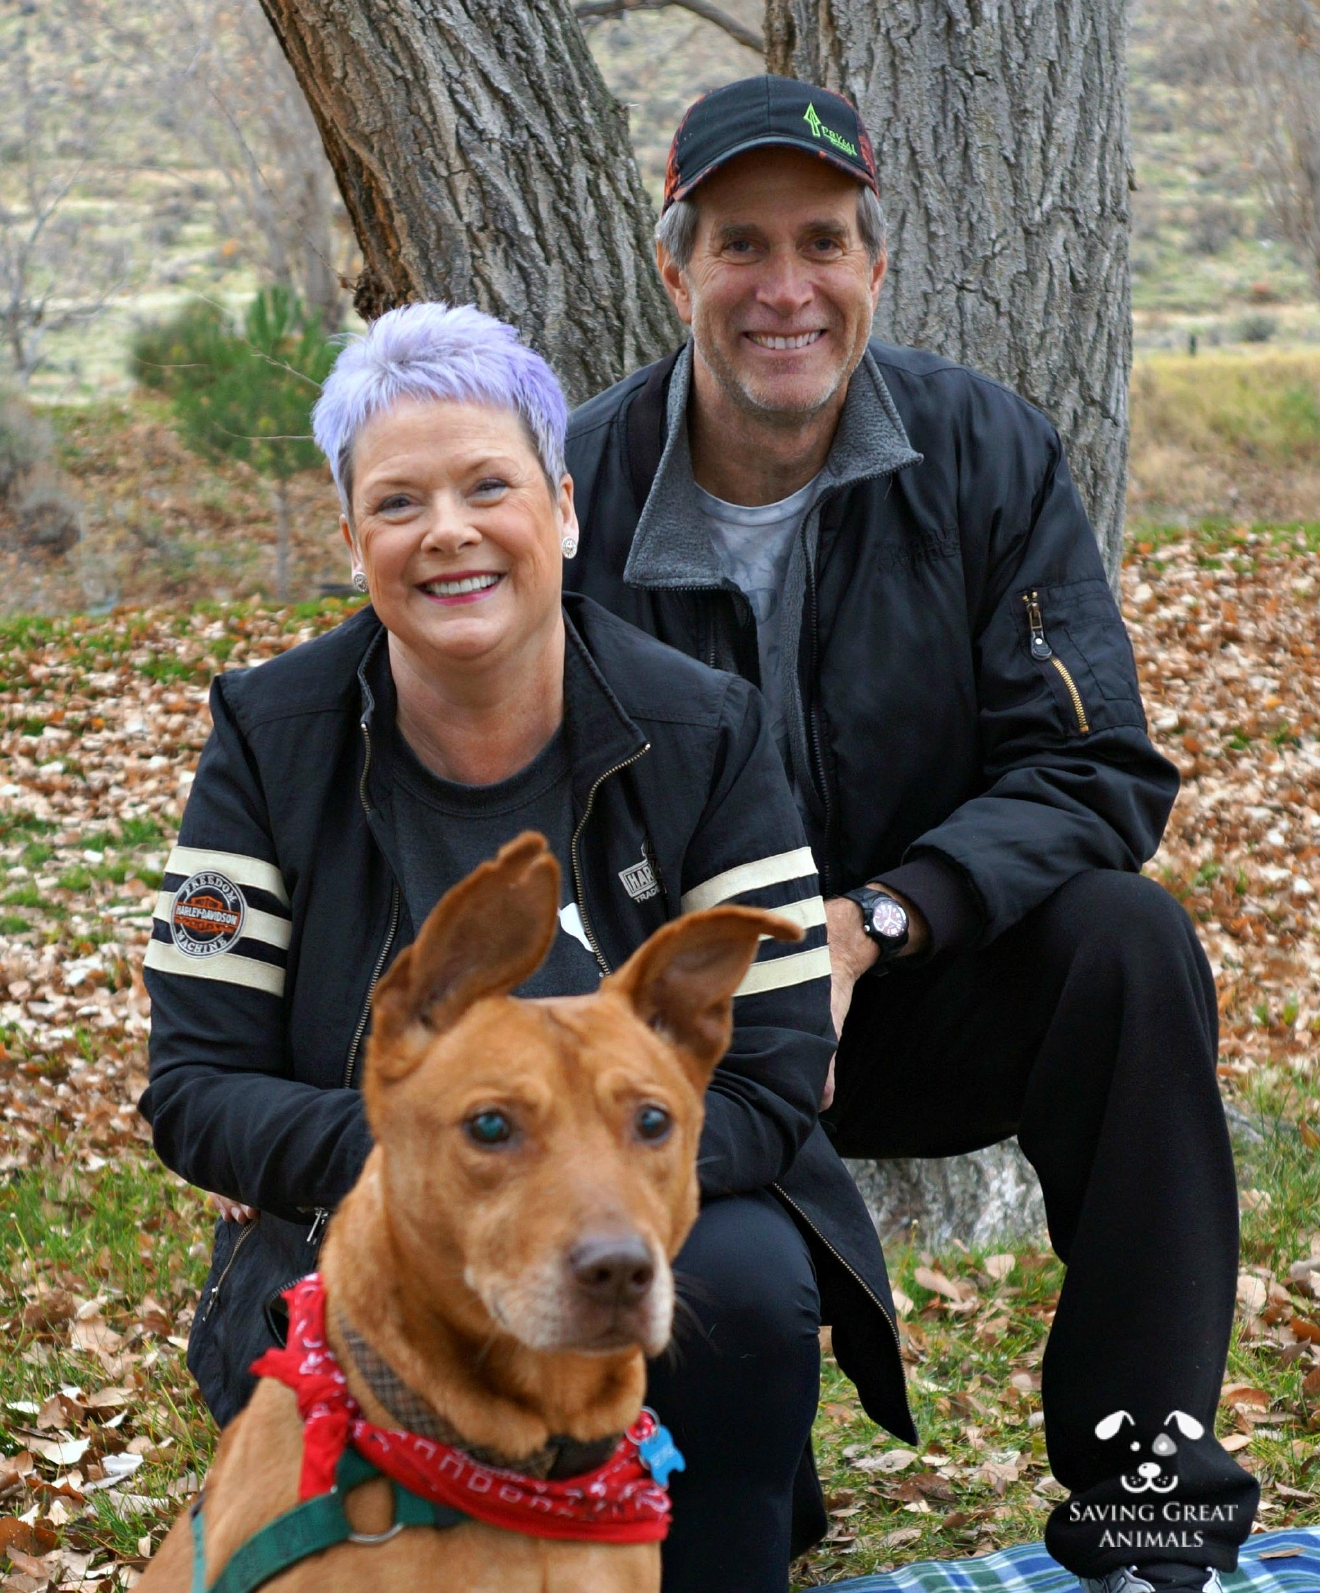 After two years of living at Best Friends in Edmonds, George was finally adopted last Friday (December 2) by Carl and Stephanie Schuur from Asotin, WA. (Image courtesy of Jacintha Sayed)